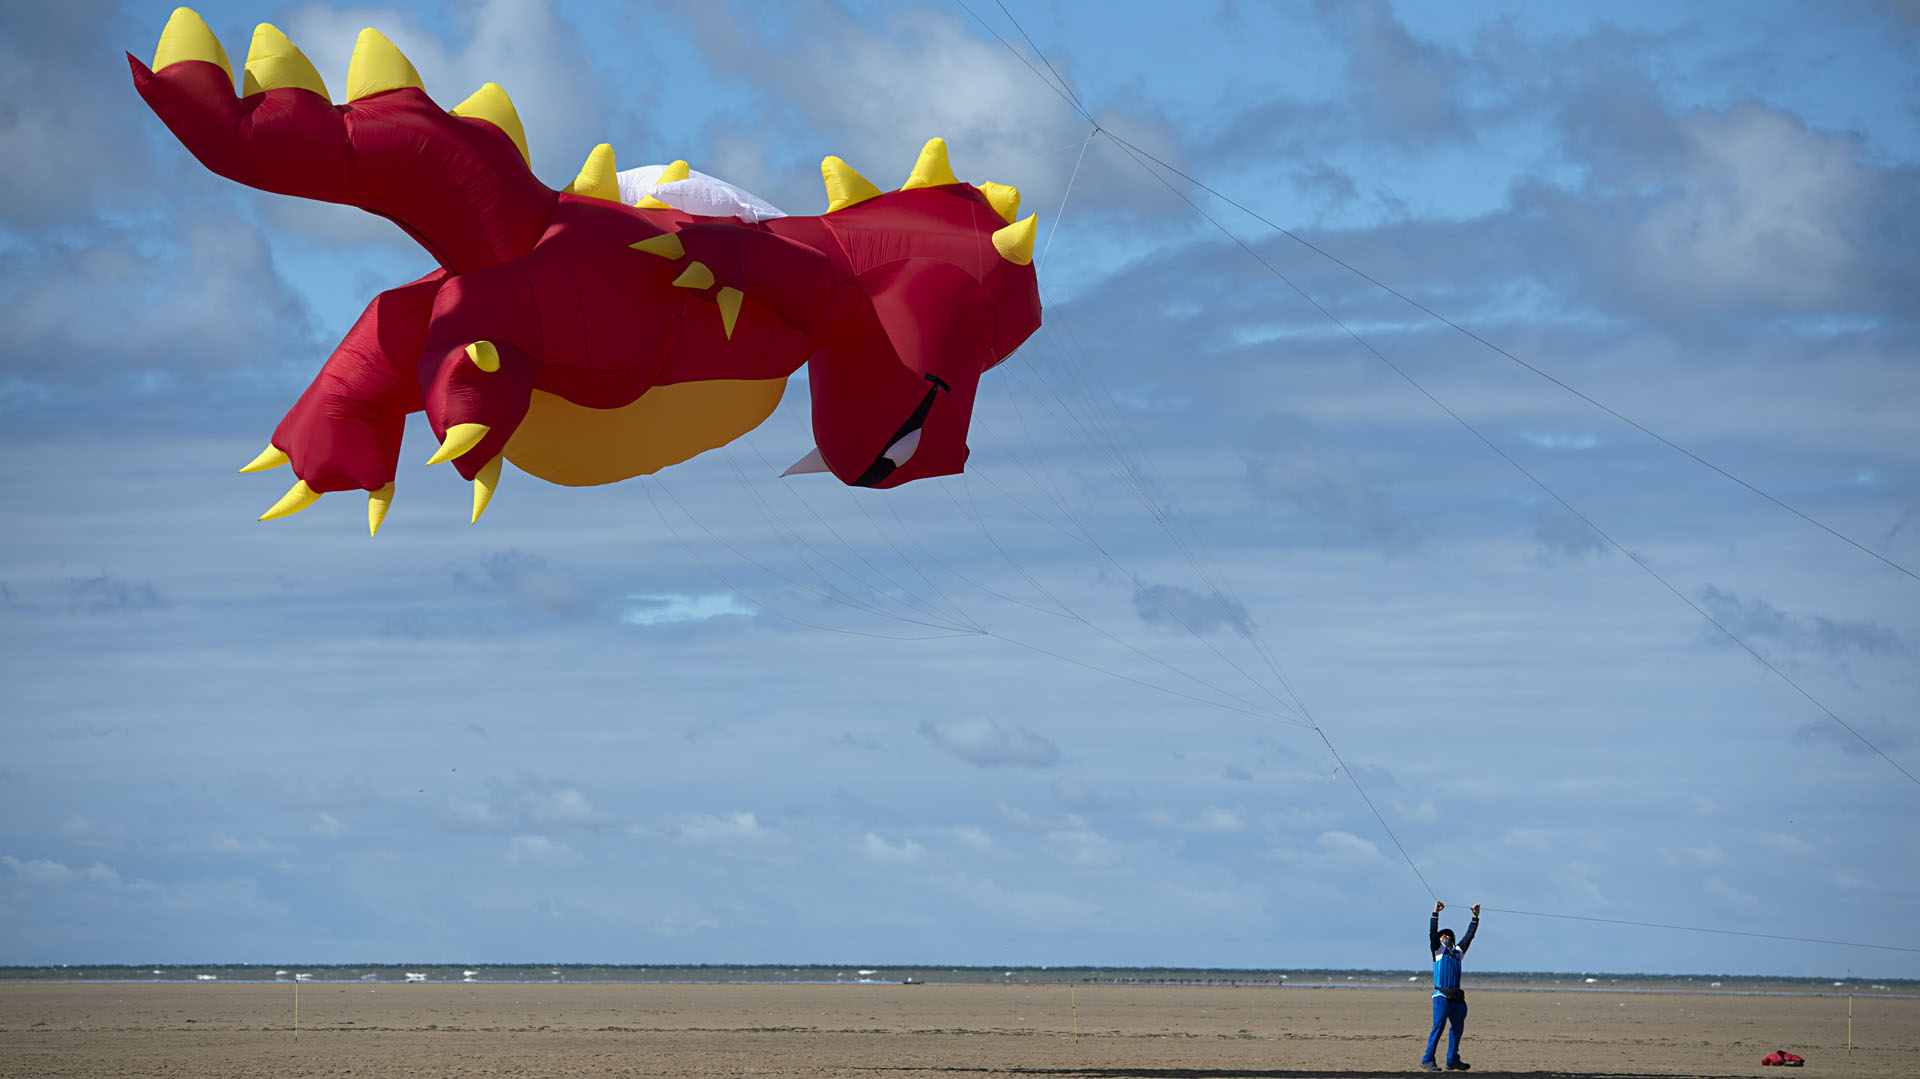 Kite enthusiasts participate in the St Annes Kite Festival on the seafront in Lytham St Annes, north west England on July 30, 2016. / AFP PHOTO / OLI SCARFF